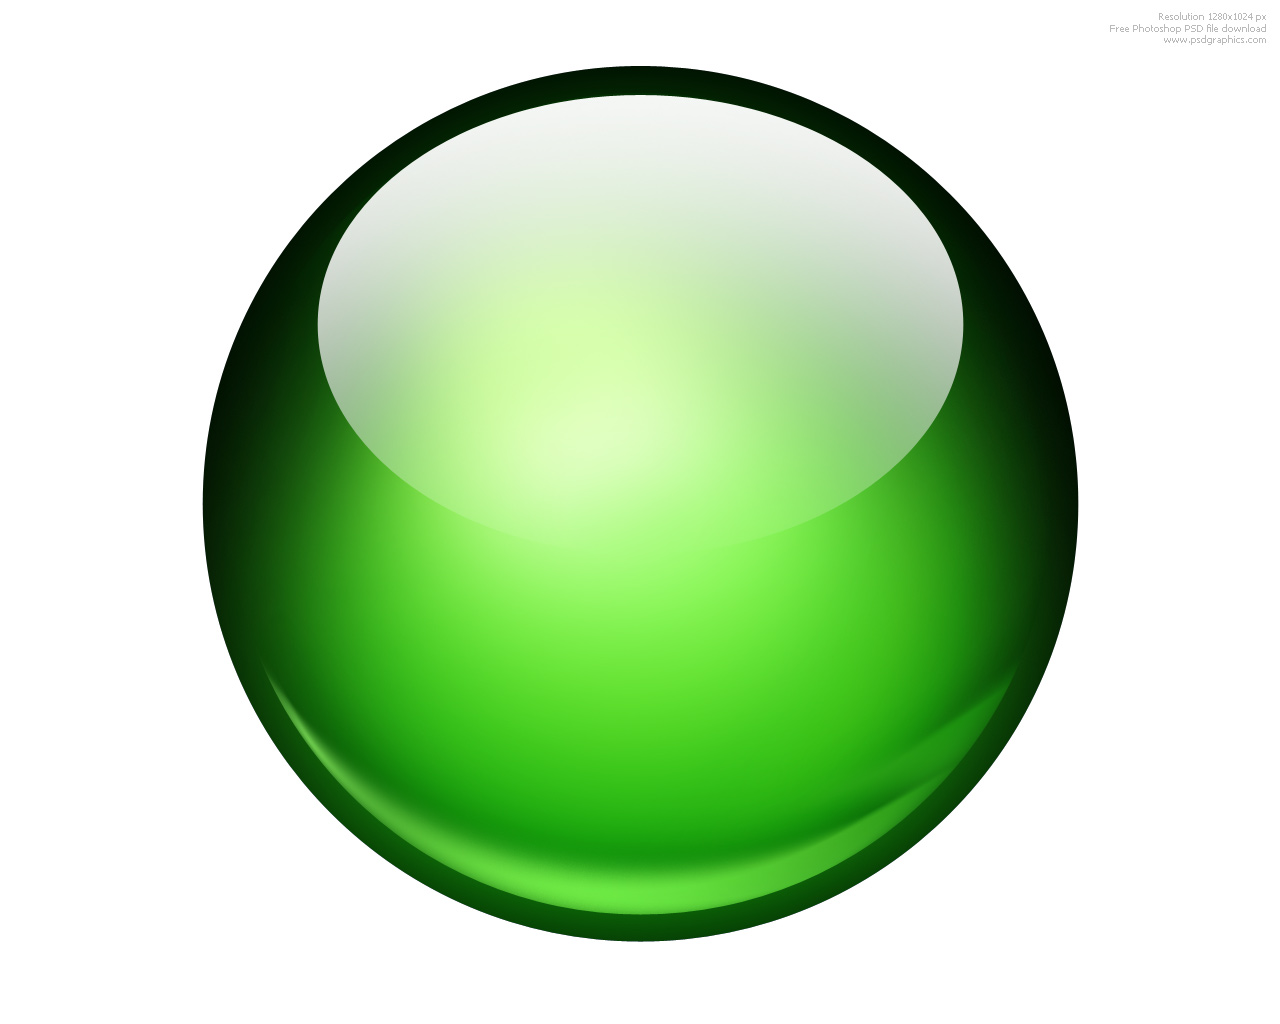 6 Color Ball Icon.png Images